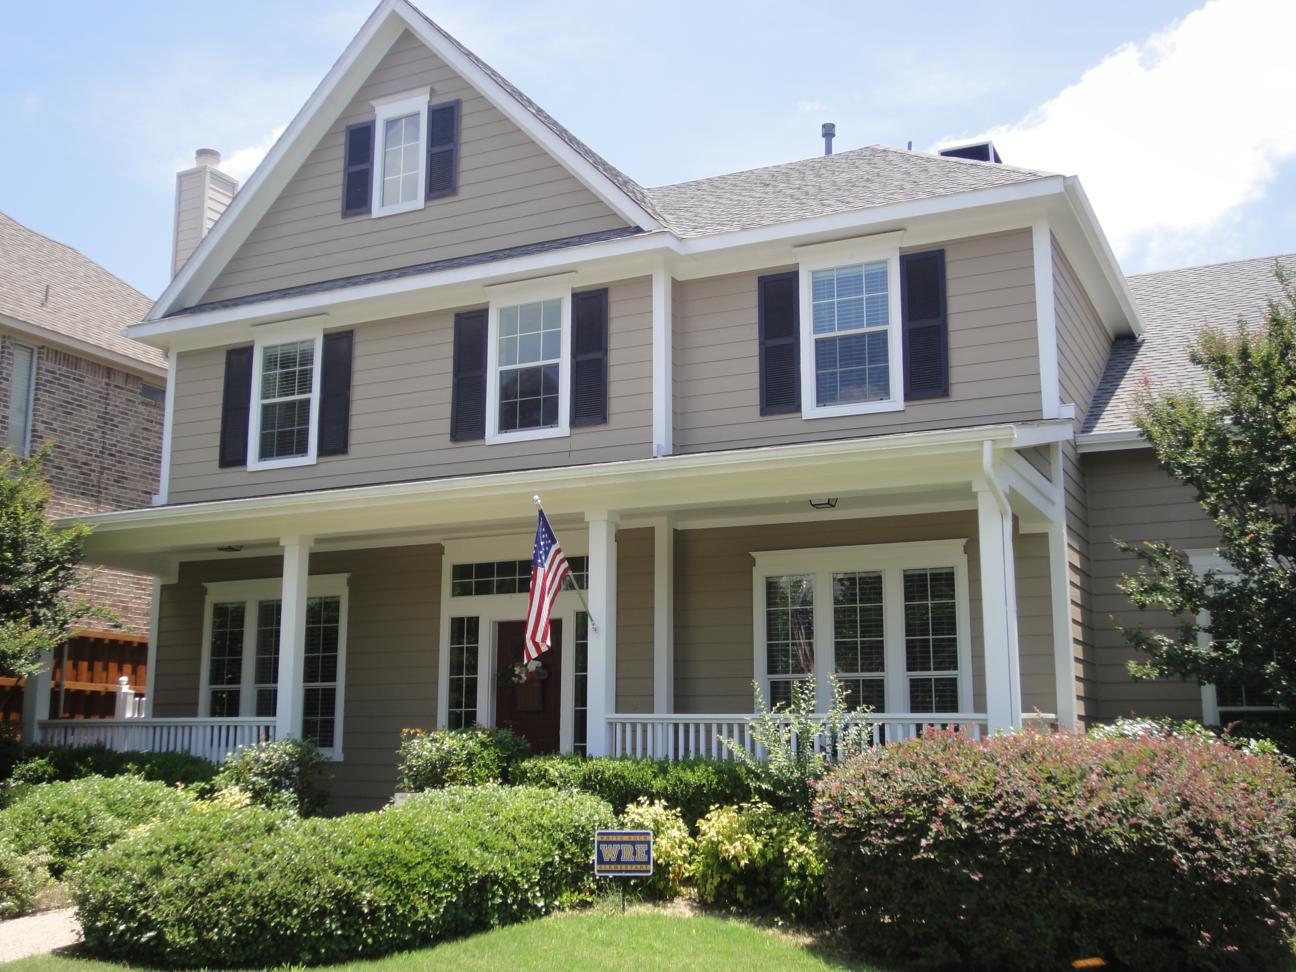 Awesome Paint Color For House Exterior With Many Windows And Green Front Garden